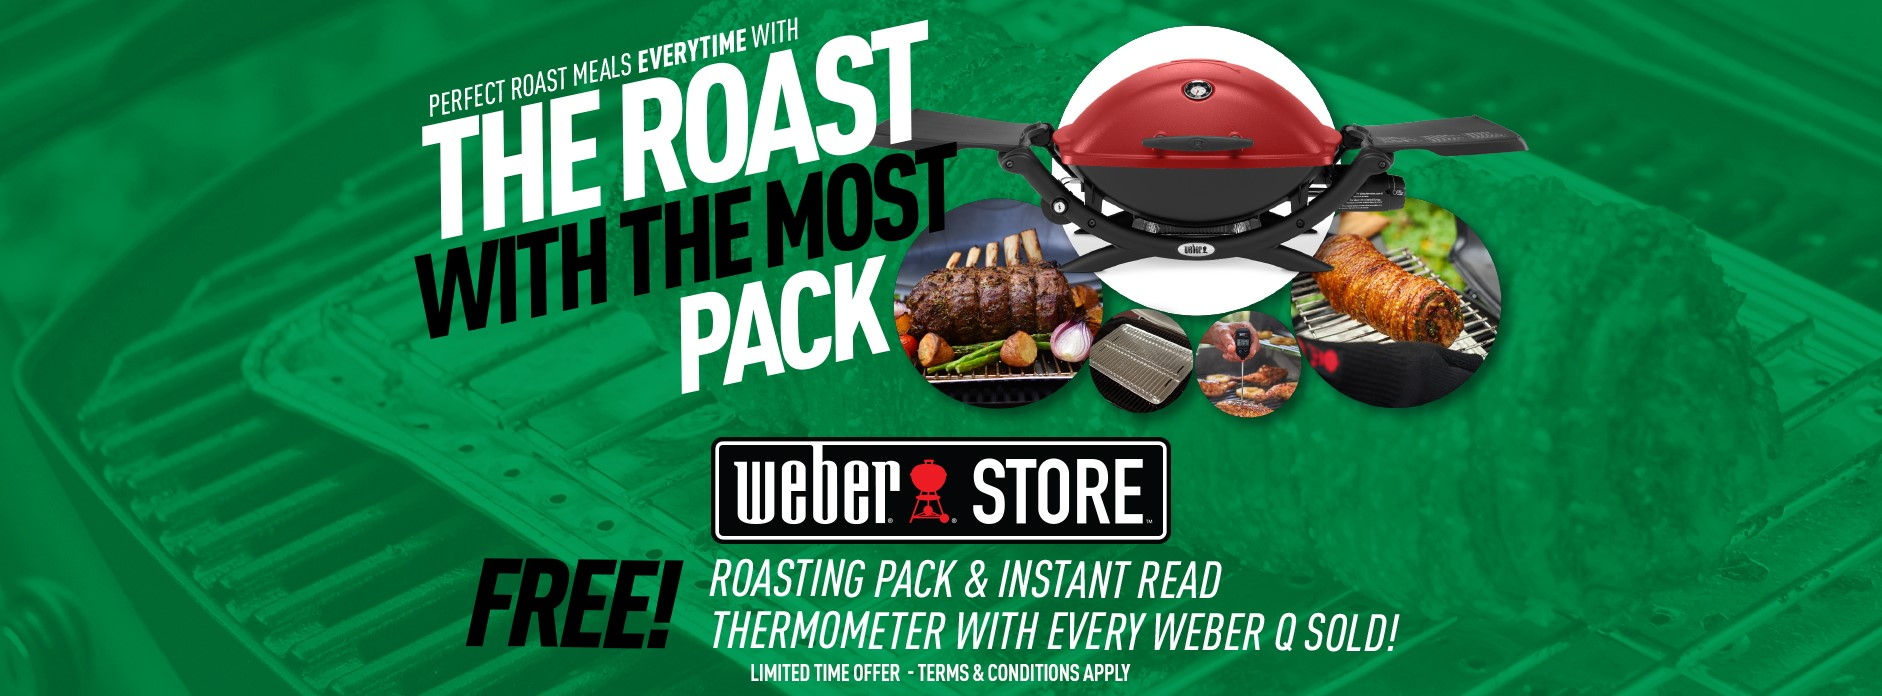 rawsons-appliances-bathrooms-weber-roast-with-the-most-offer.jpg